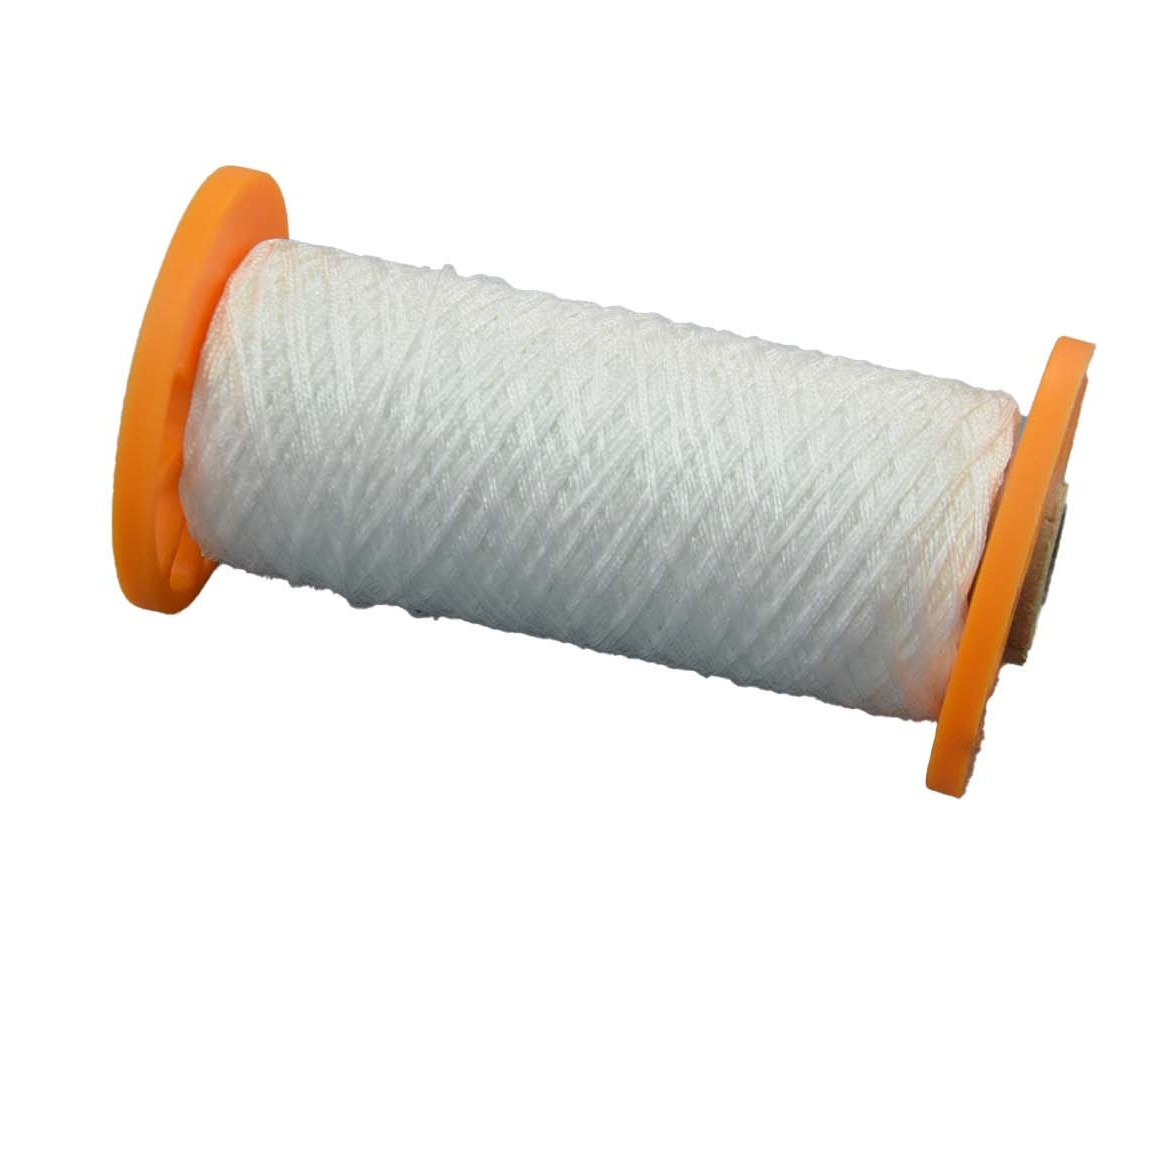 Drawstring for window shades 0,7 mm